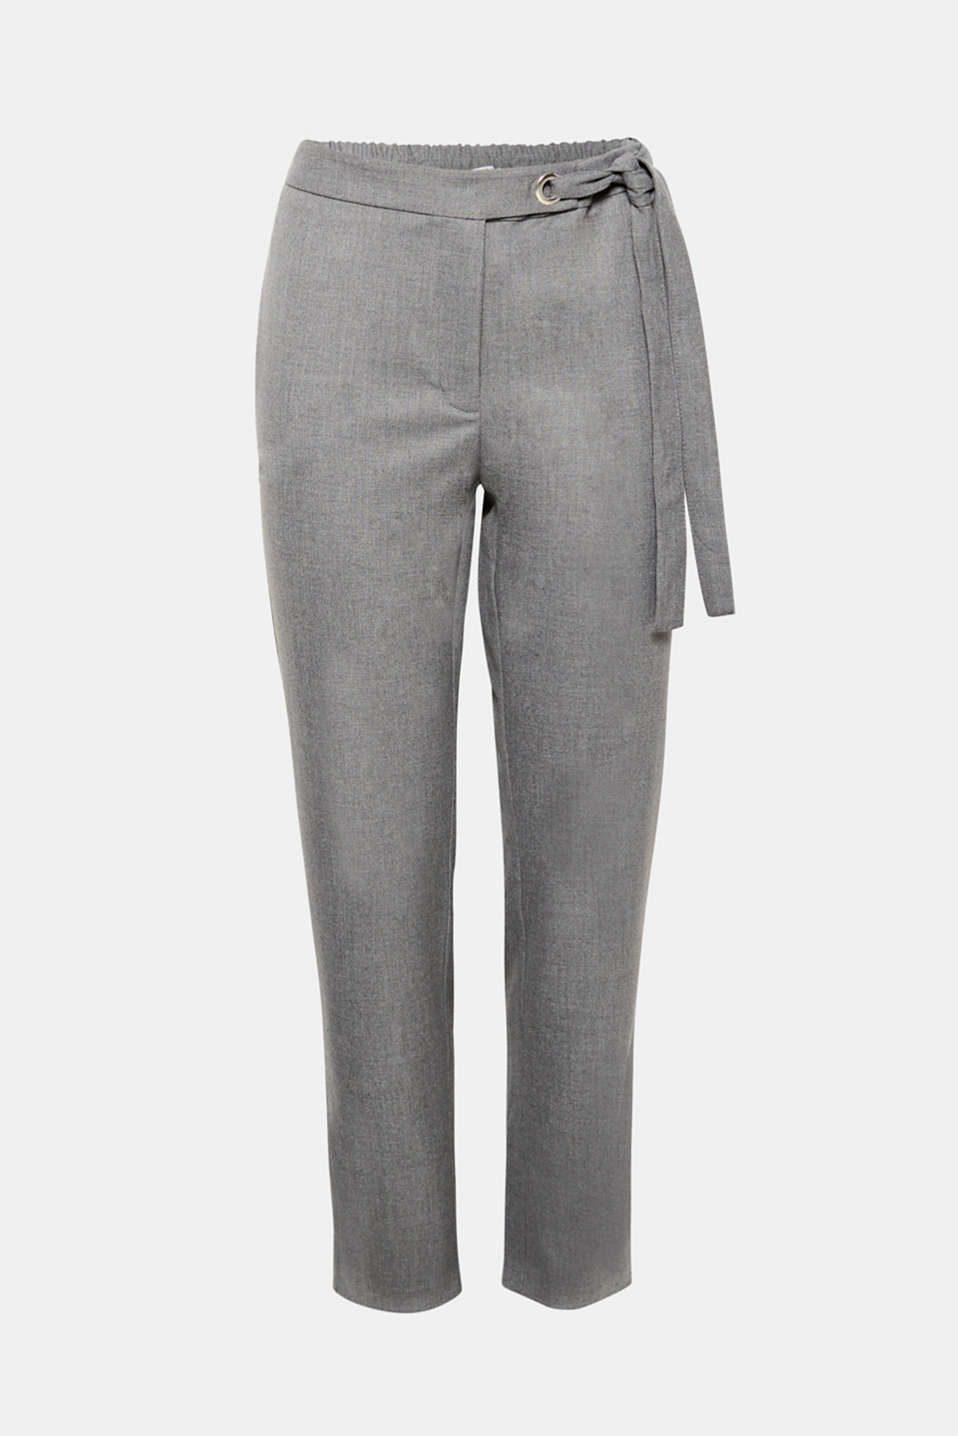 Casual and stylish at the same time: These trousers in stretchy crêpe fabric with ties on the sides skilfully combine a feminine, casual look with elegant style.